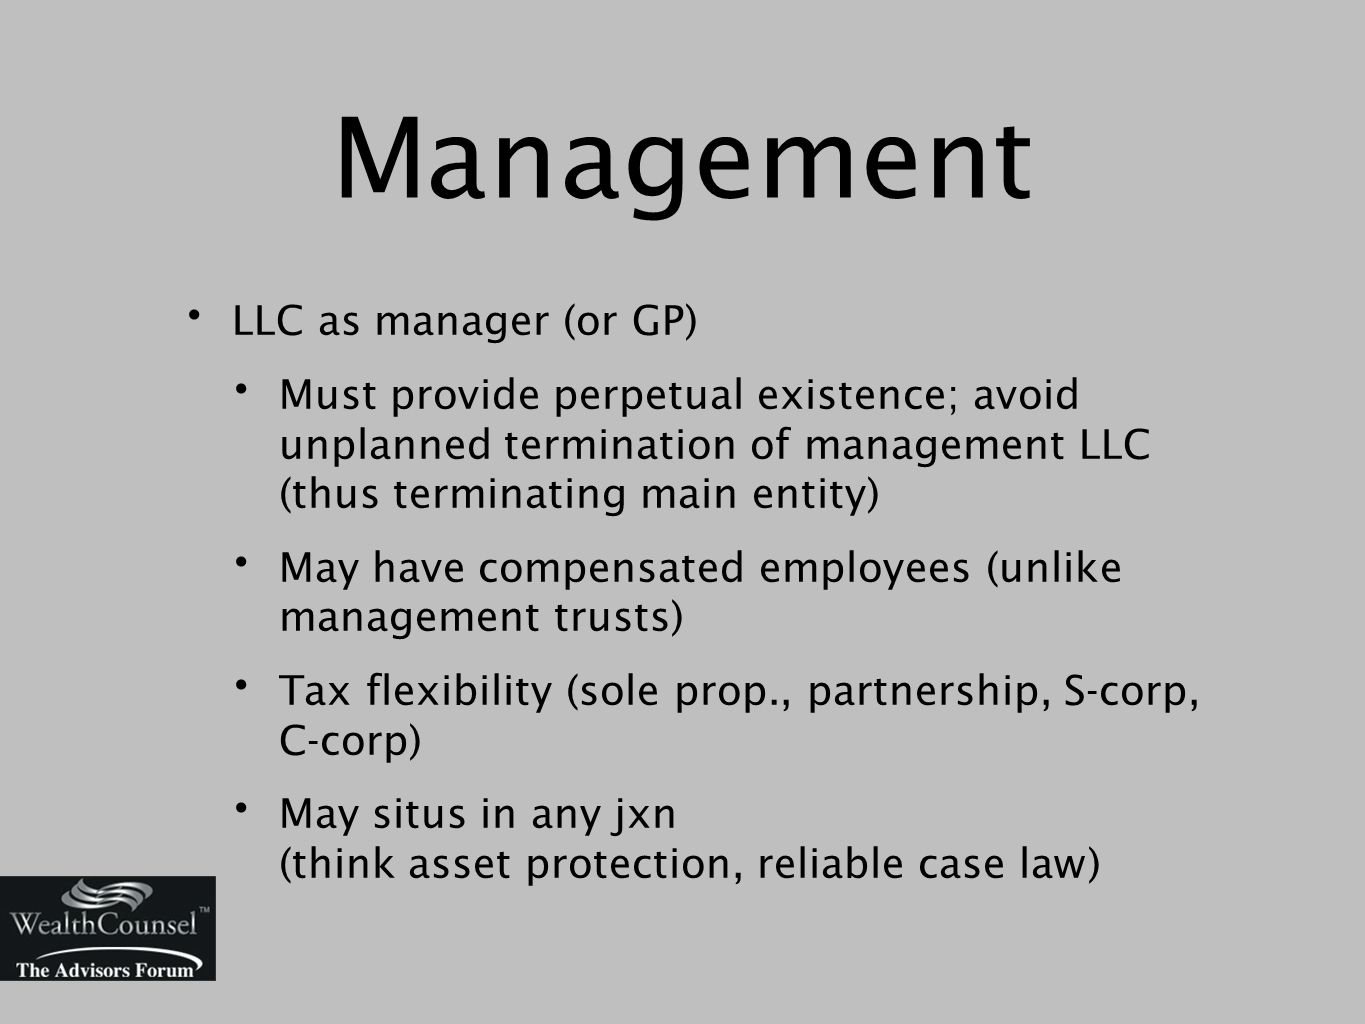 LLC as manager (or GP) Must provide perpetual existence; avoid unplanned termination of management LLC (thus terminating main entity) May have compensated employees (unlike management trusts) Tax flexibility (sole prop., partnership, S-corp, C-corp) May situs in any jxn (think asset protection, reliable case law) Management